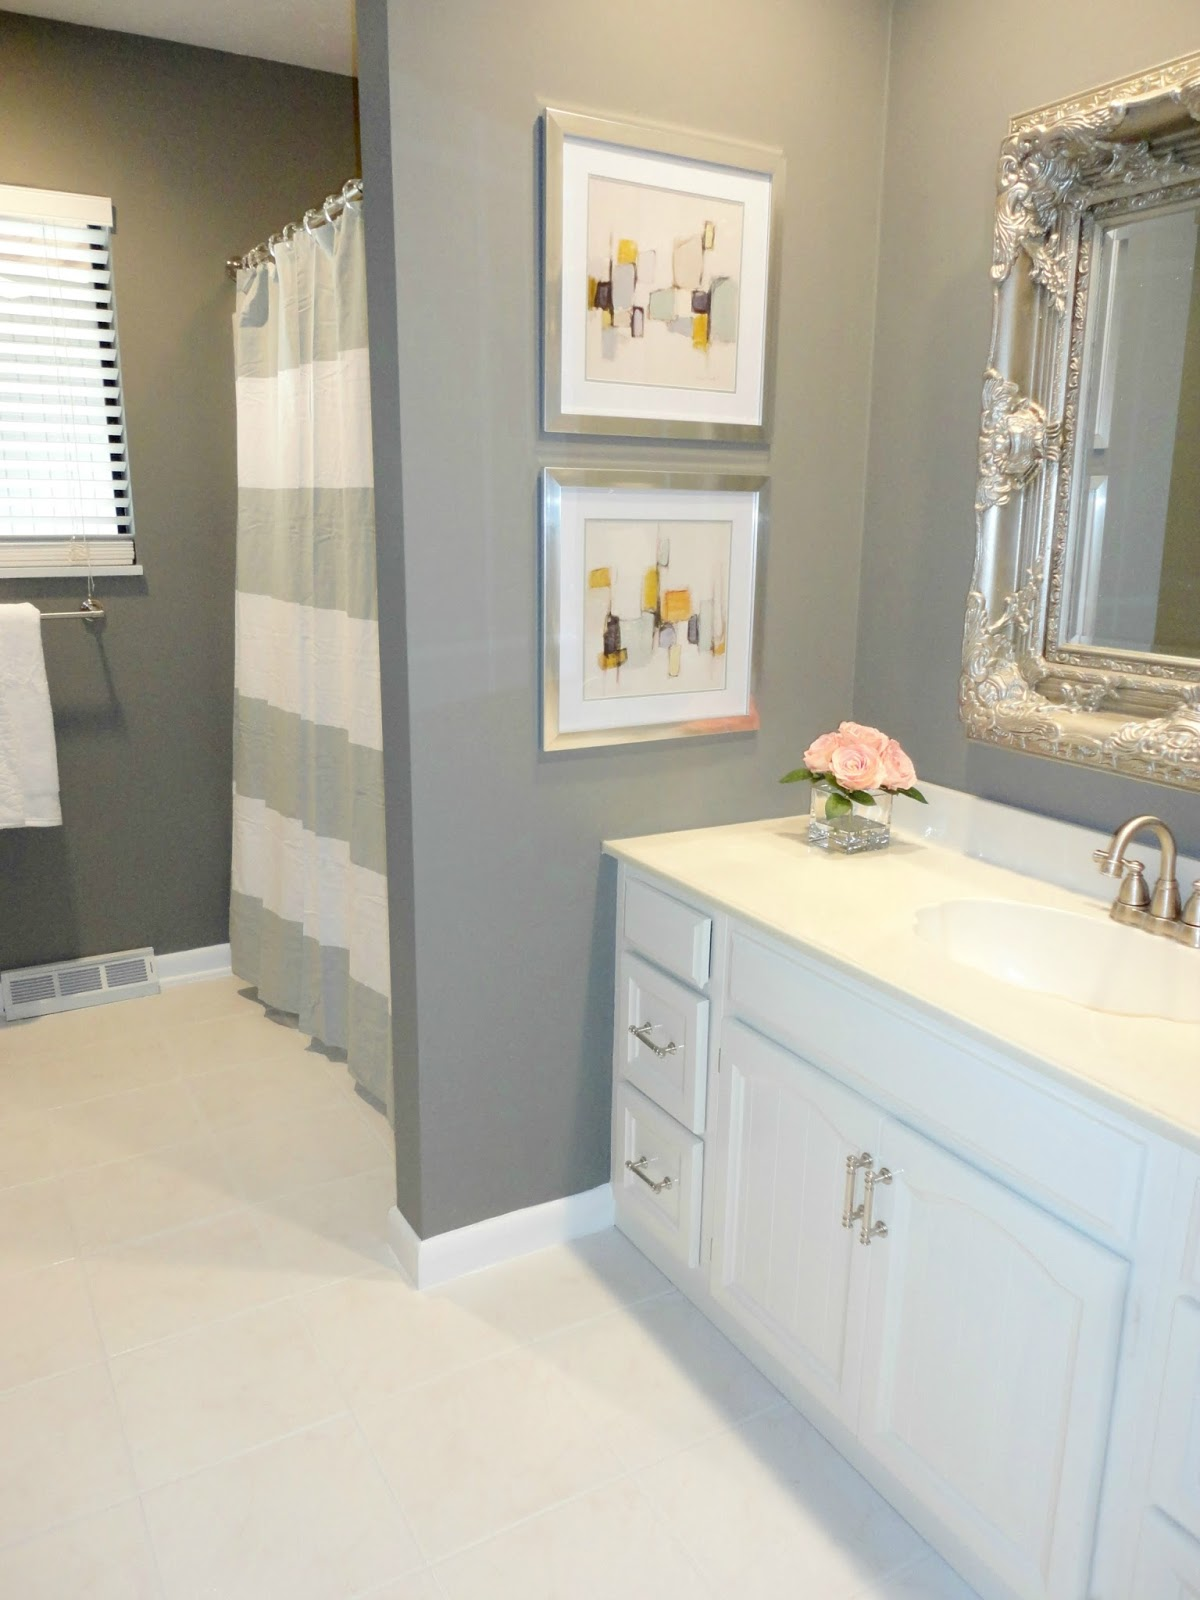 Inexpensive Diy Bathroom Remodel livelovediy: diy bathroom remodel on a budget